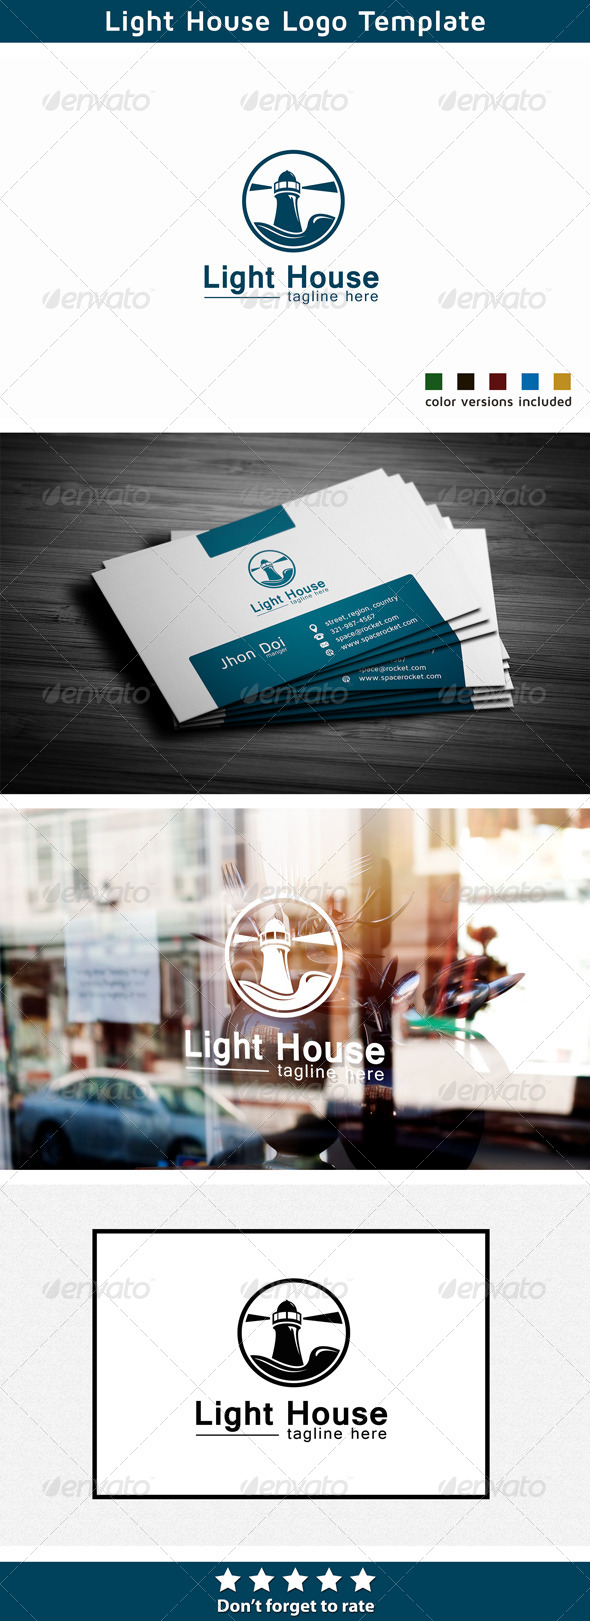 Lighthouse Logo - Church - Buildings Logo Templates